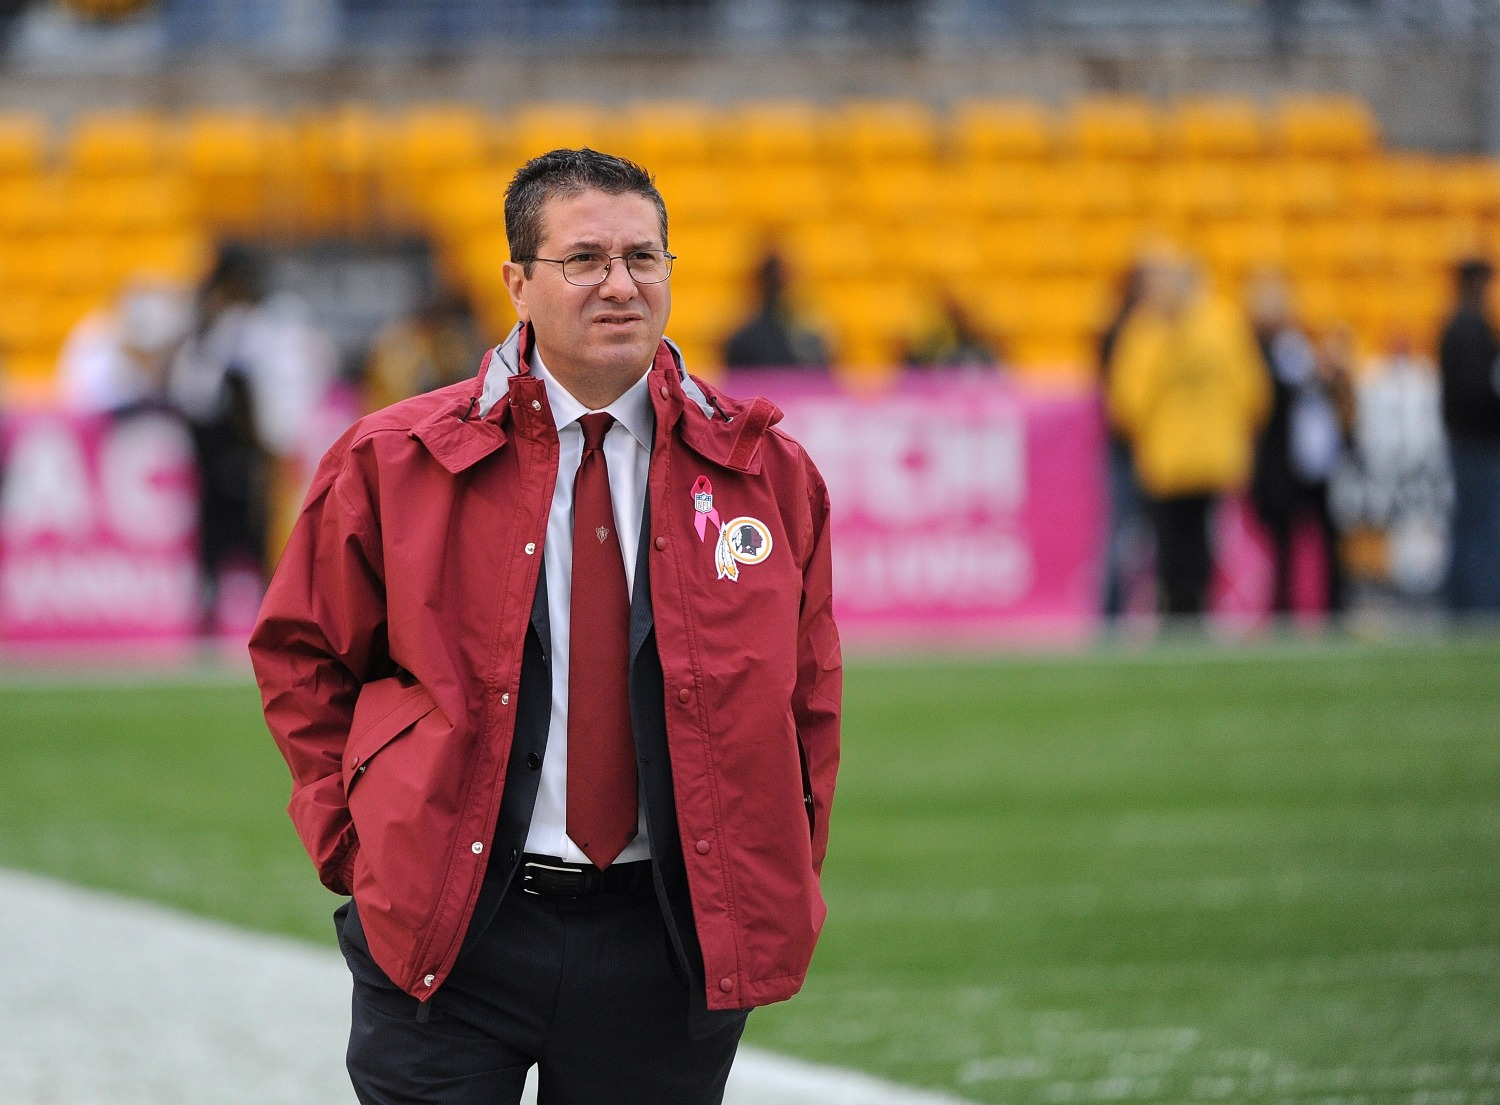 Dan Snyder faces a monumental decision in changing the Redskins name with pressure mounting from investors.